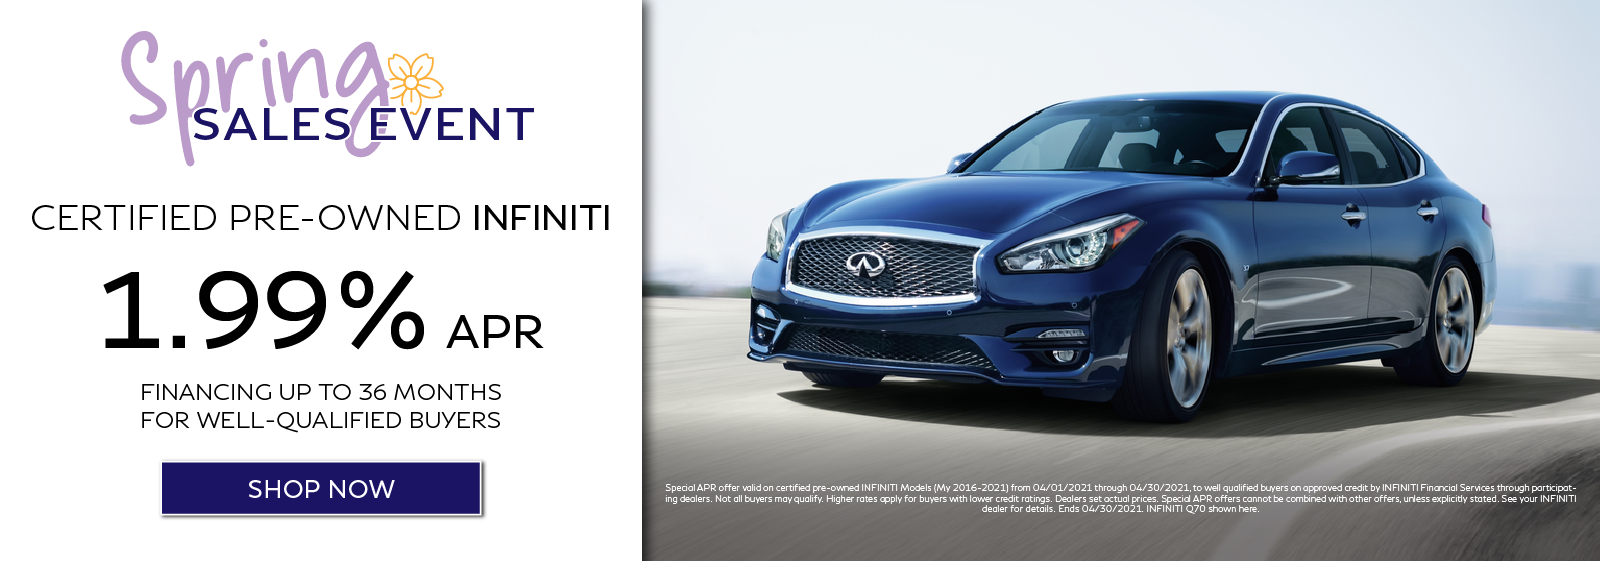 Certified Pre-Owned INFINITI APR Offer. Click to shop now.